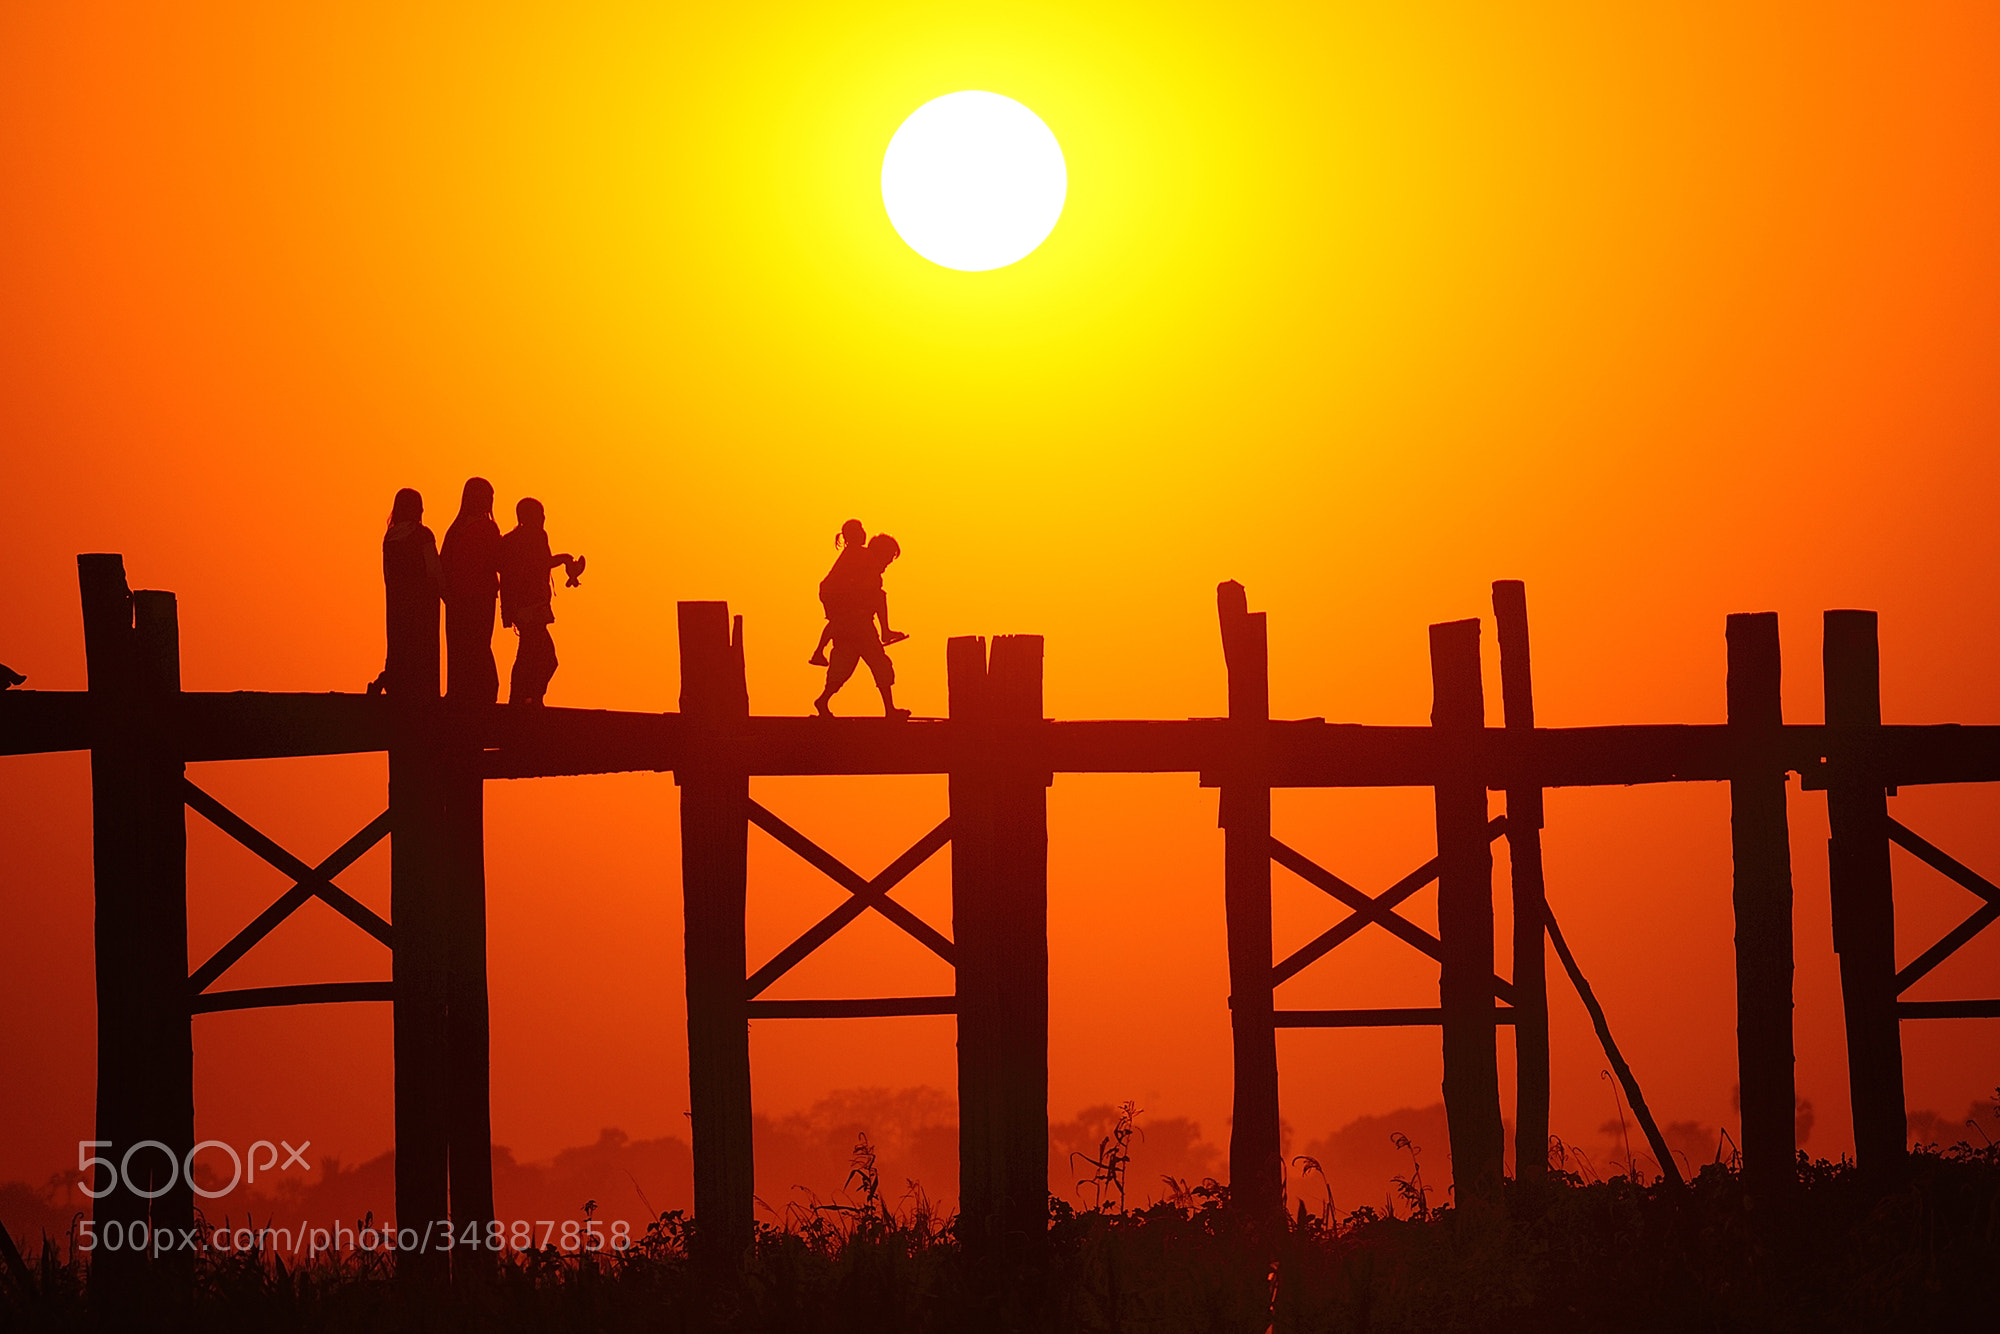 Photograph Family by Puchong Pannoi on 500px